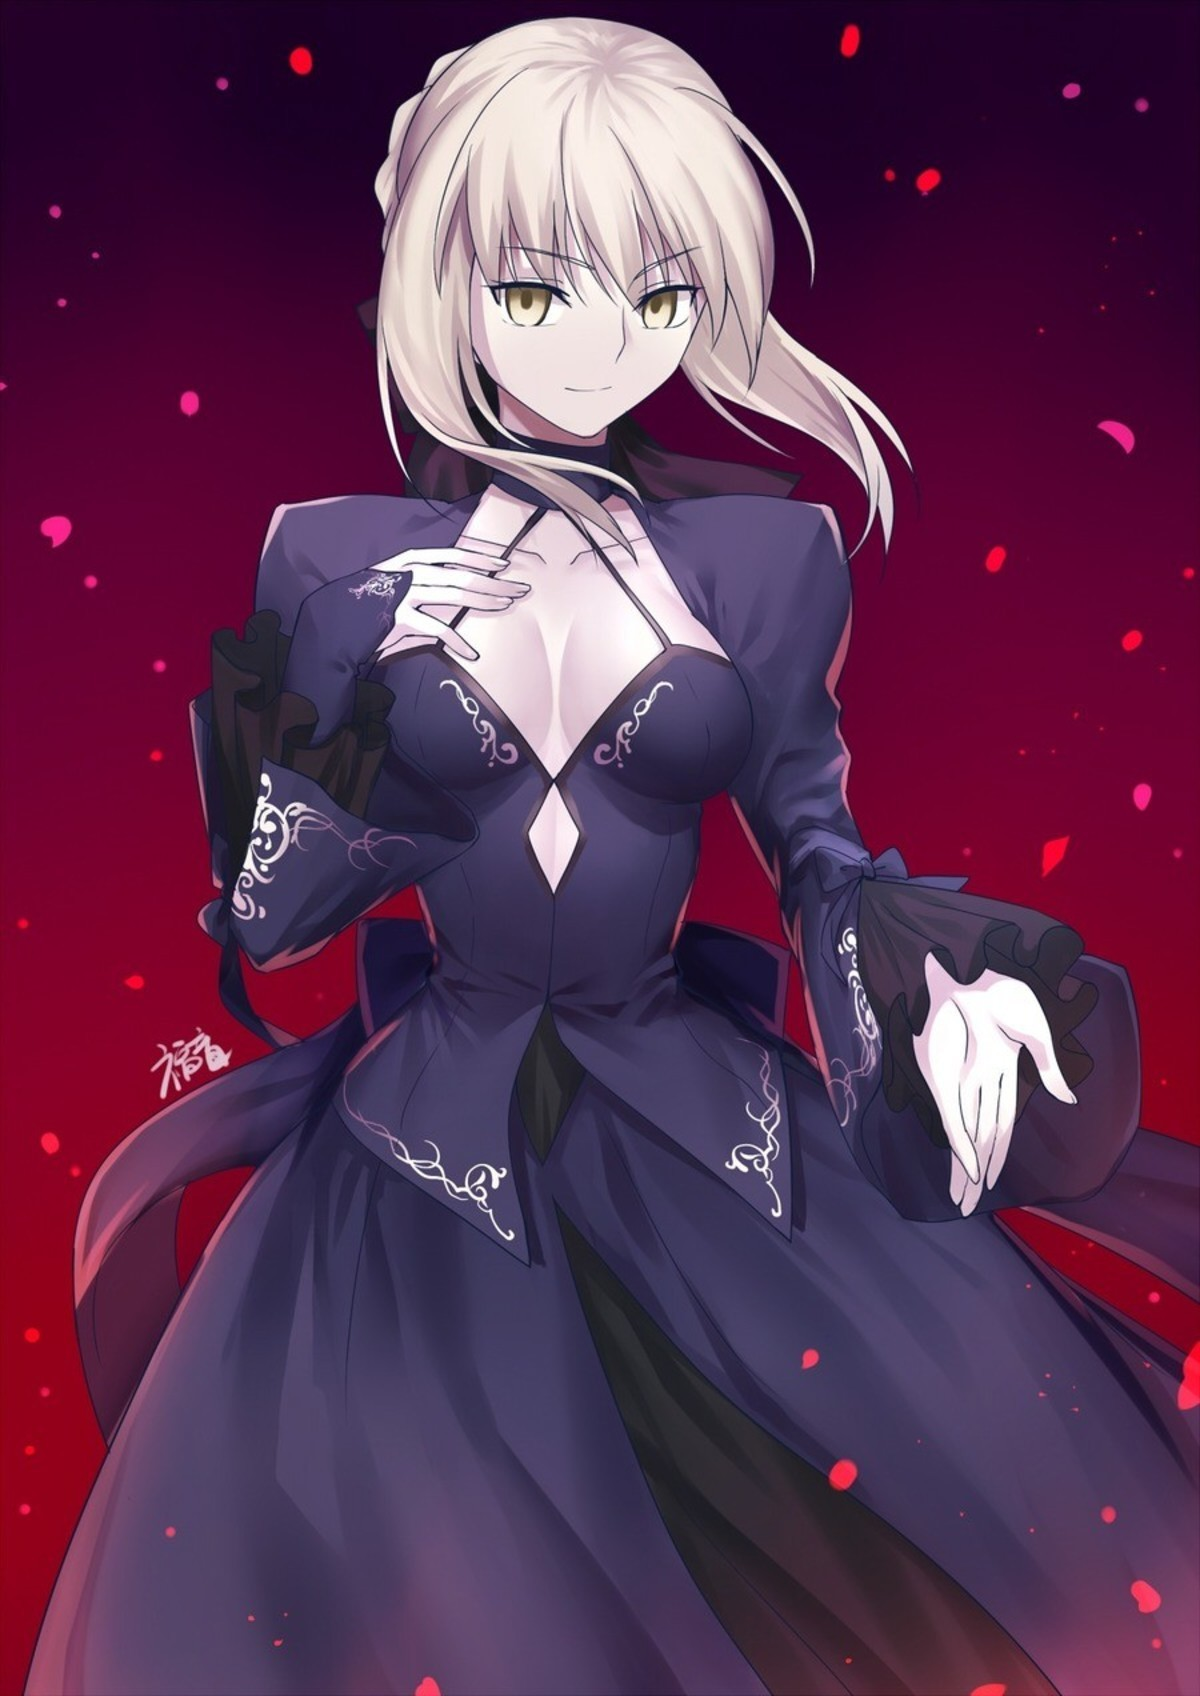 Alter Alter. www.pixiv.net/i/72756745.. > Normal Altria is your waifu > Altria Alter is your fetish